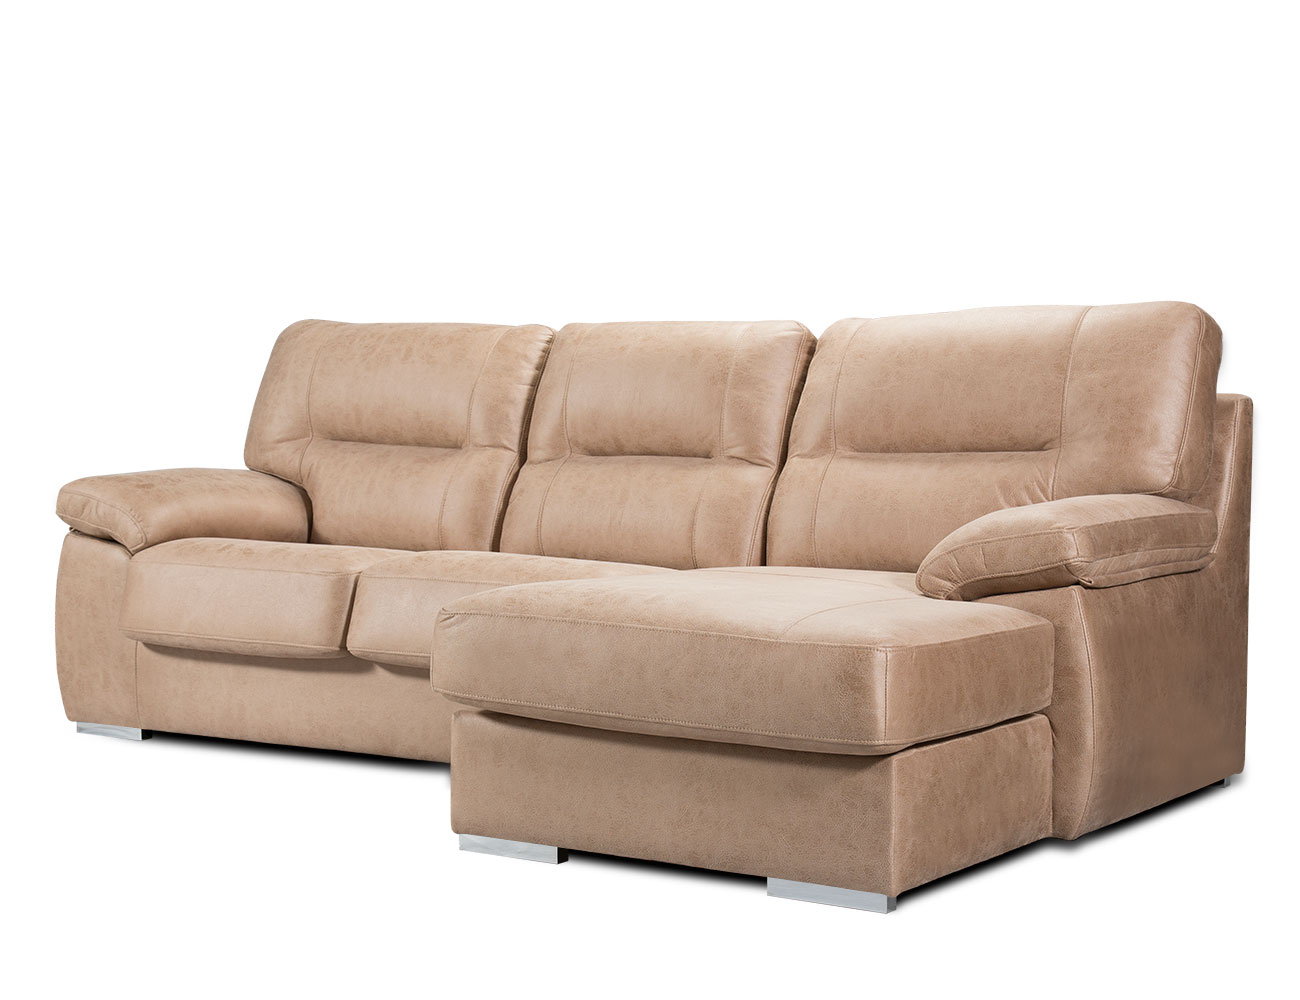 Sofa chaiselongue anti manchas